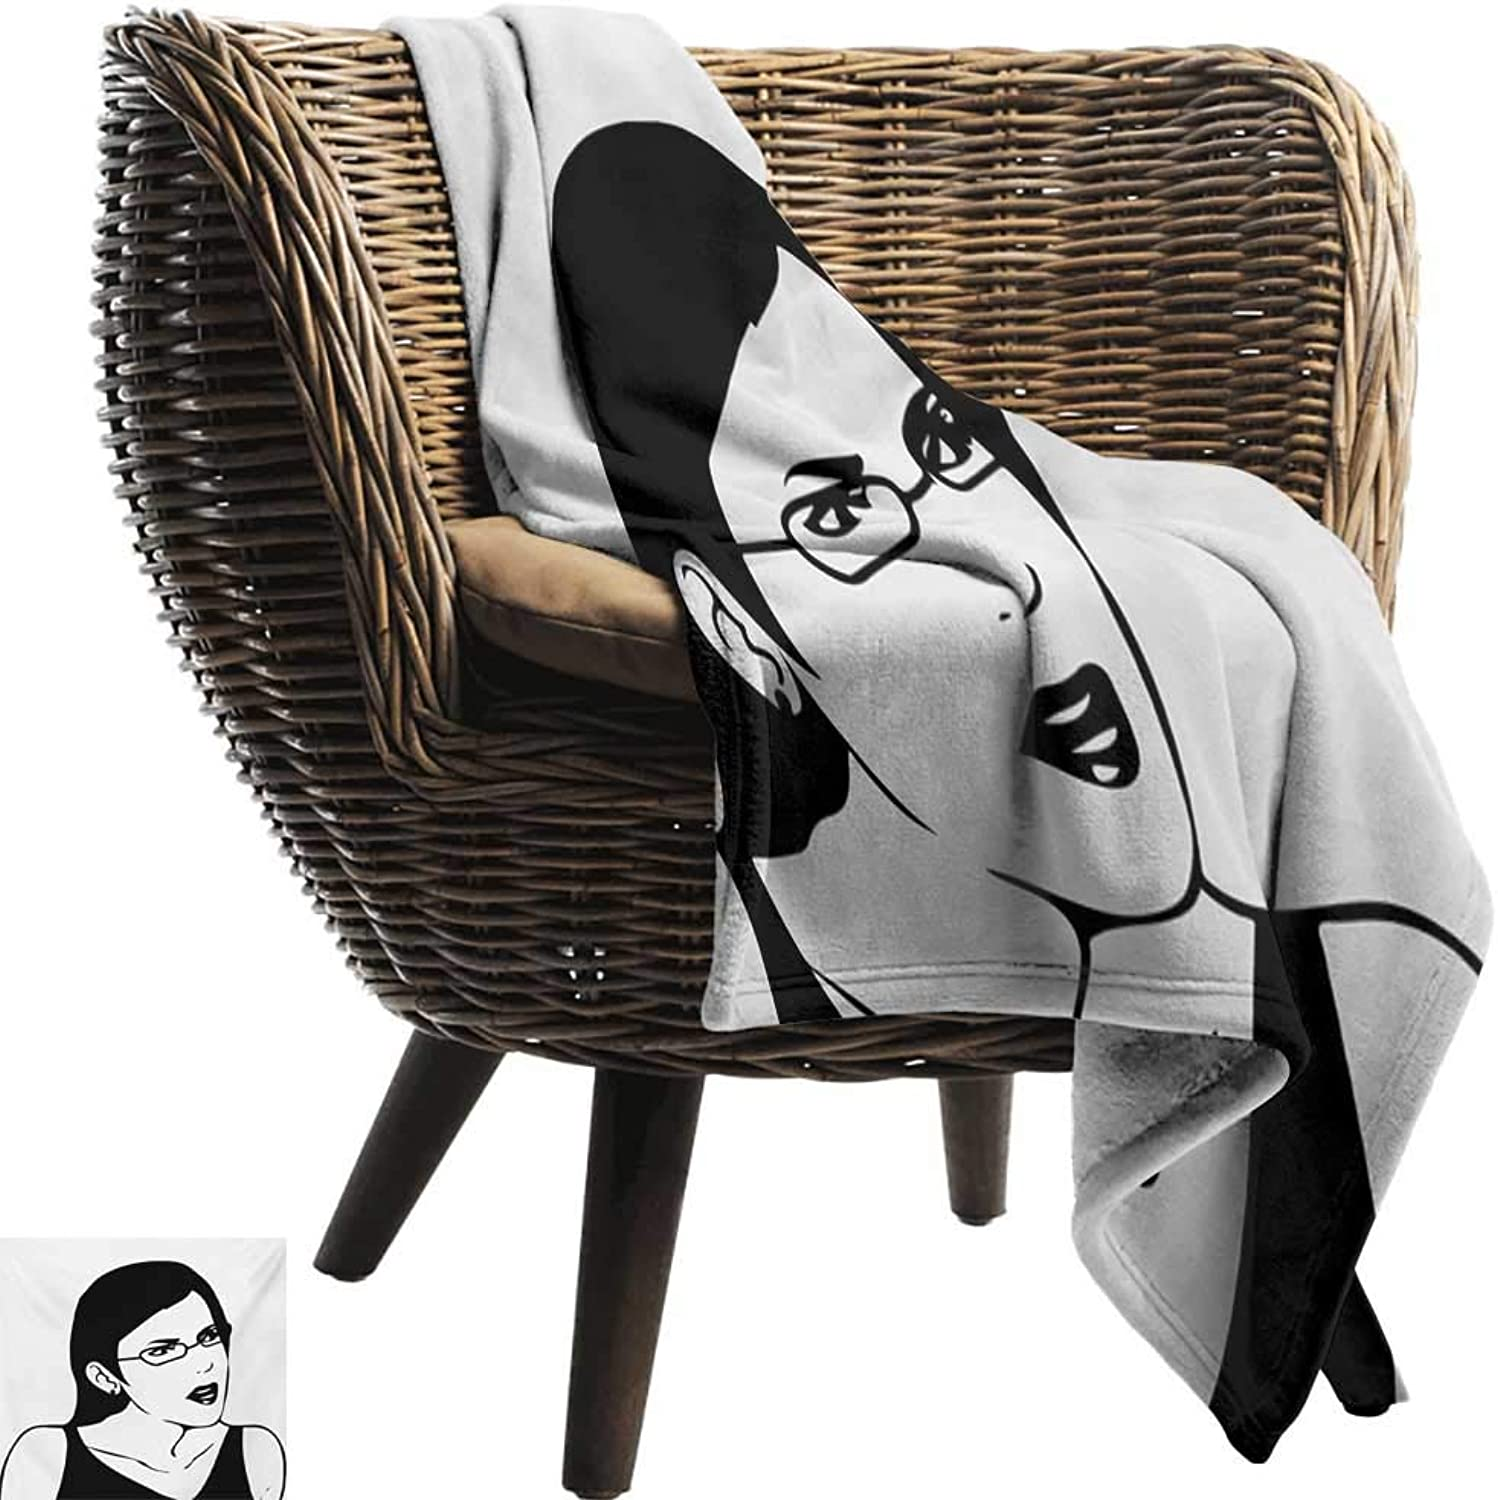 BelleAckerman Baby Blanket,Humor,Girl Woman Face Meme Unpleasant of Regular Life Situation Online Hipster Image,Black and White,Super Soft Light Weight Cozy Warm Plush Hypoallergenic Blanket 50 x70